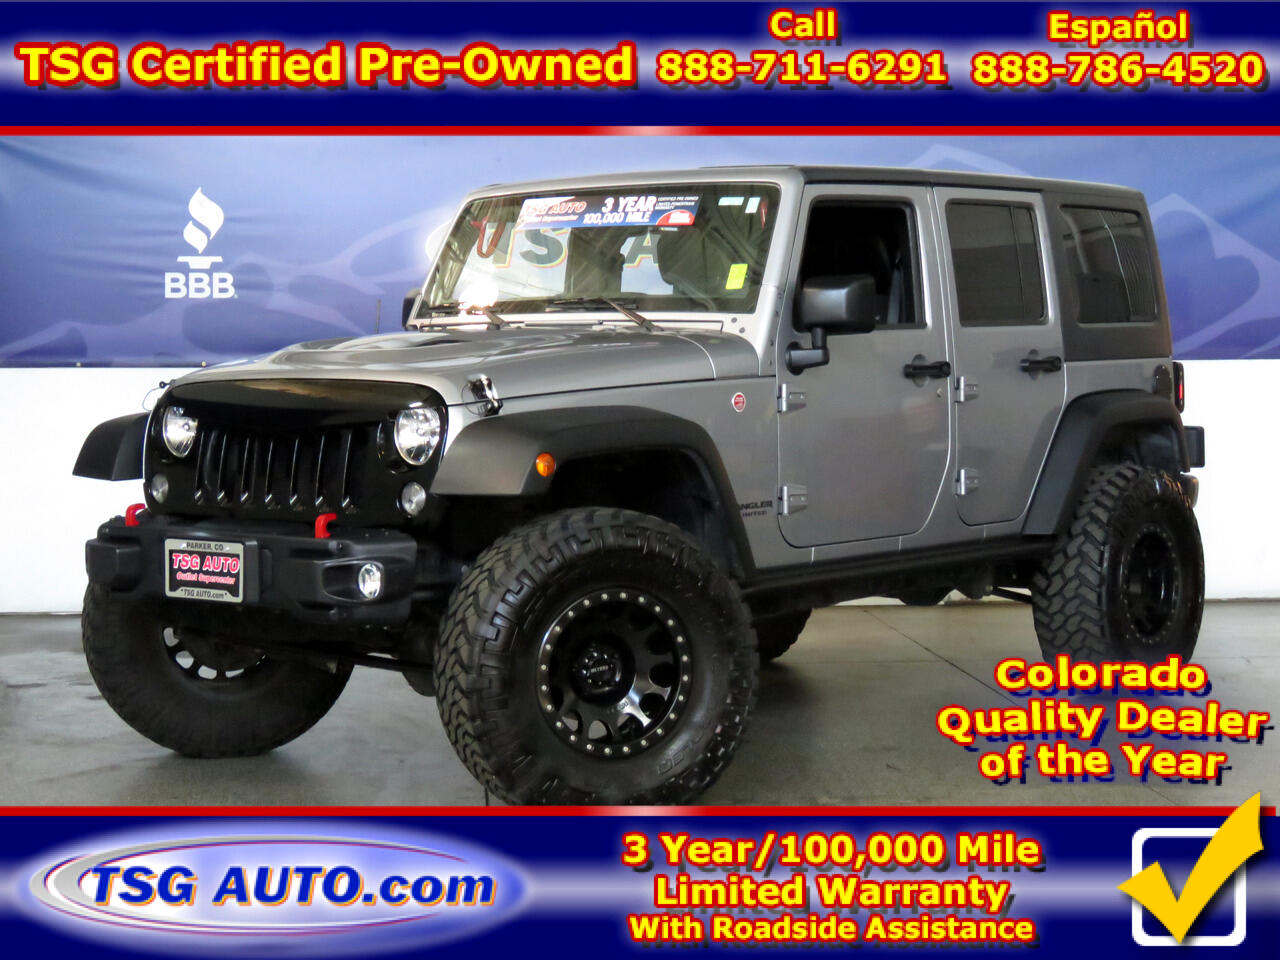 2016 Jeep Wrangler Unlimited 4WD 4dr Rubicon W/Custom Lift/Wheels/Tires